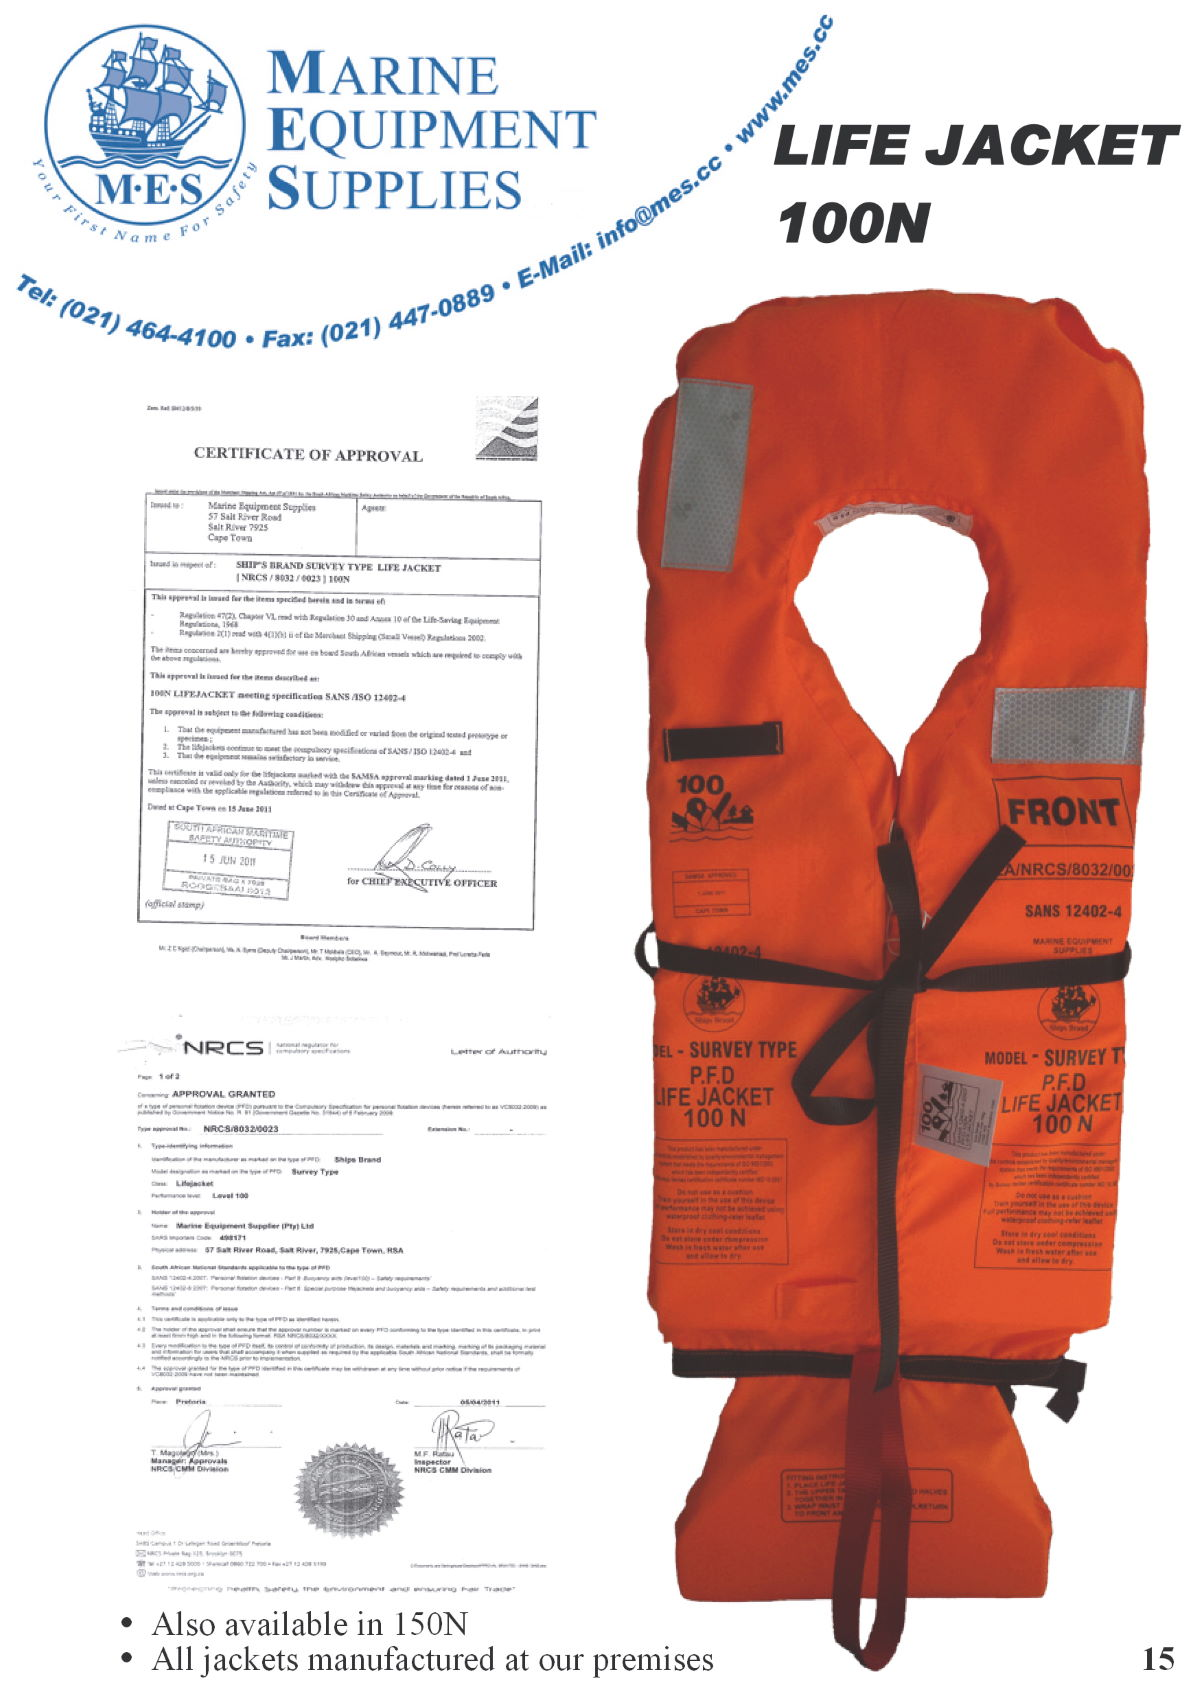 Marine Lifejackets 100N & 150N